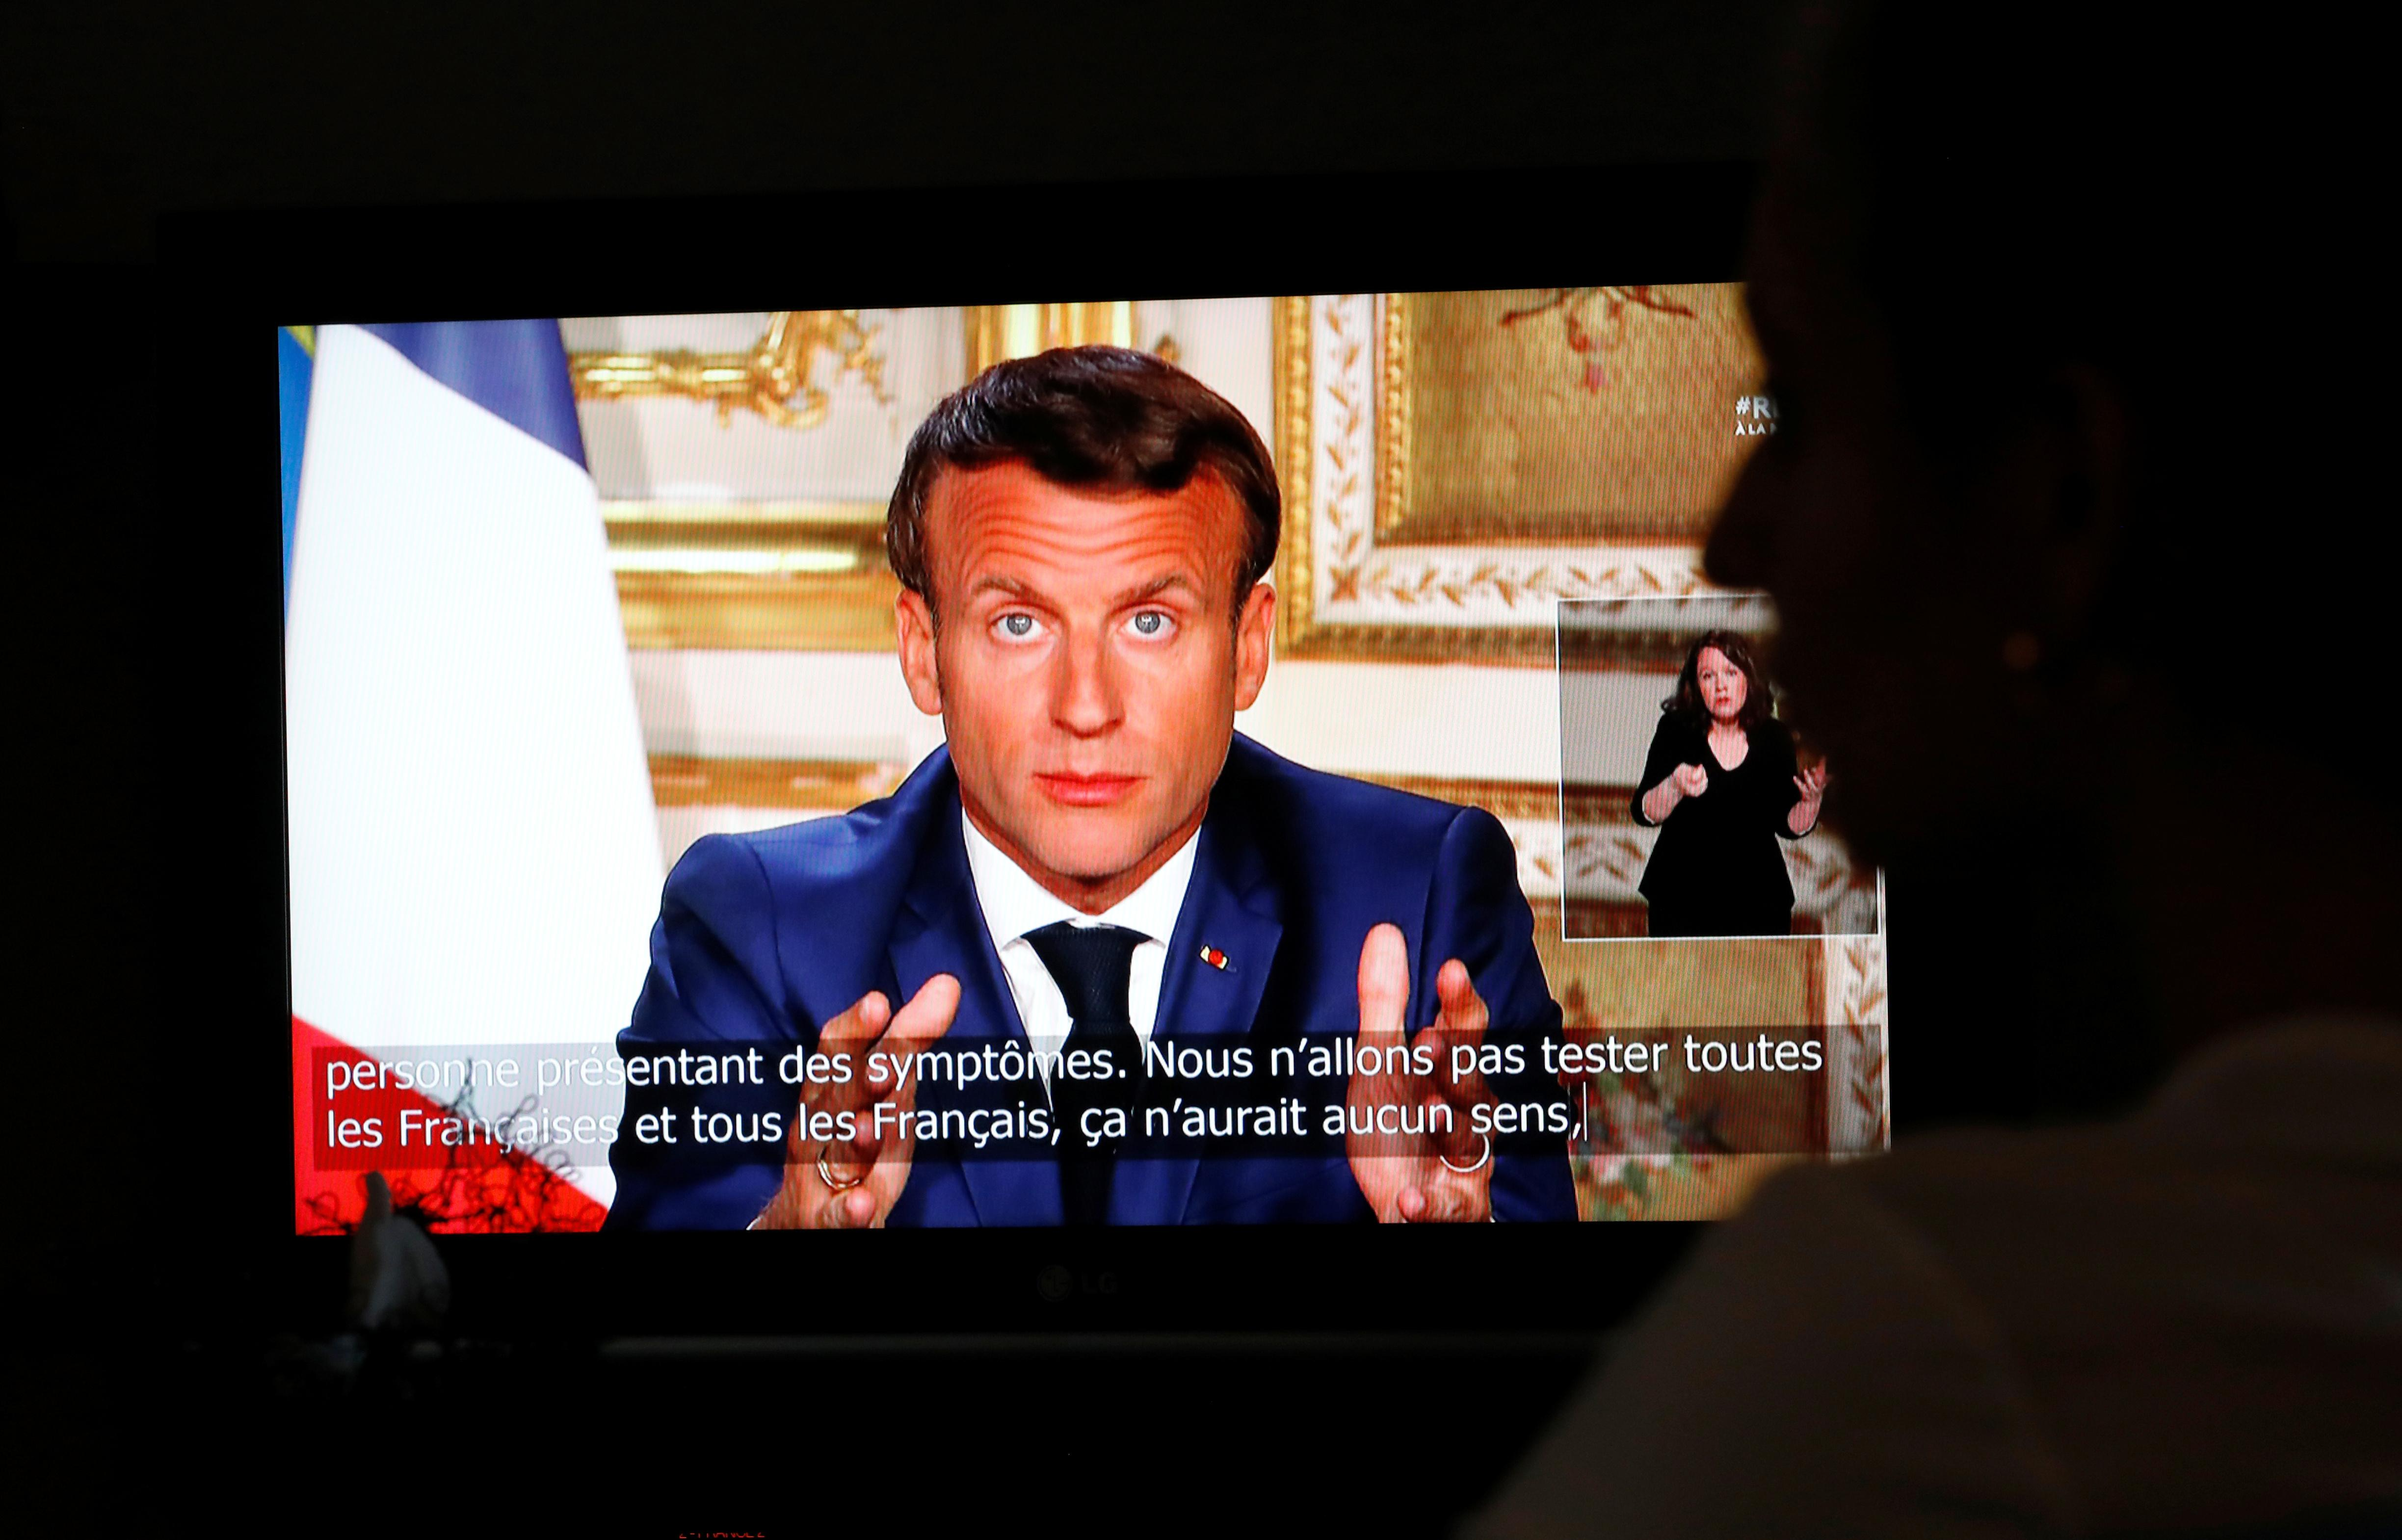 French President Emmanuel Macron is seen as he addresses the nation about the coronavirus disease (COVID-19) outbreak, on a television screen from confined people in Vertou, France, April 13, 2020. Photo: Reuters